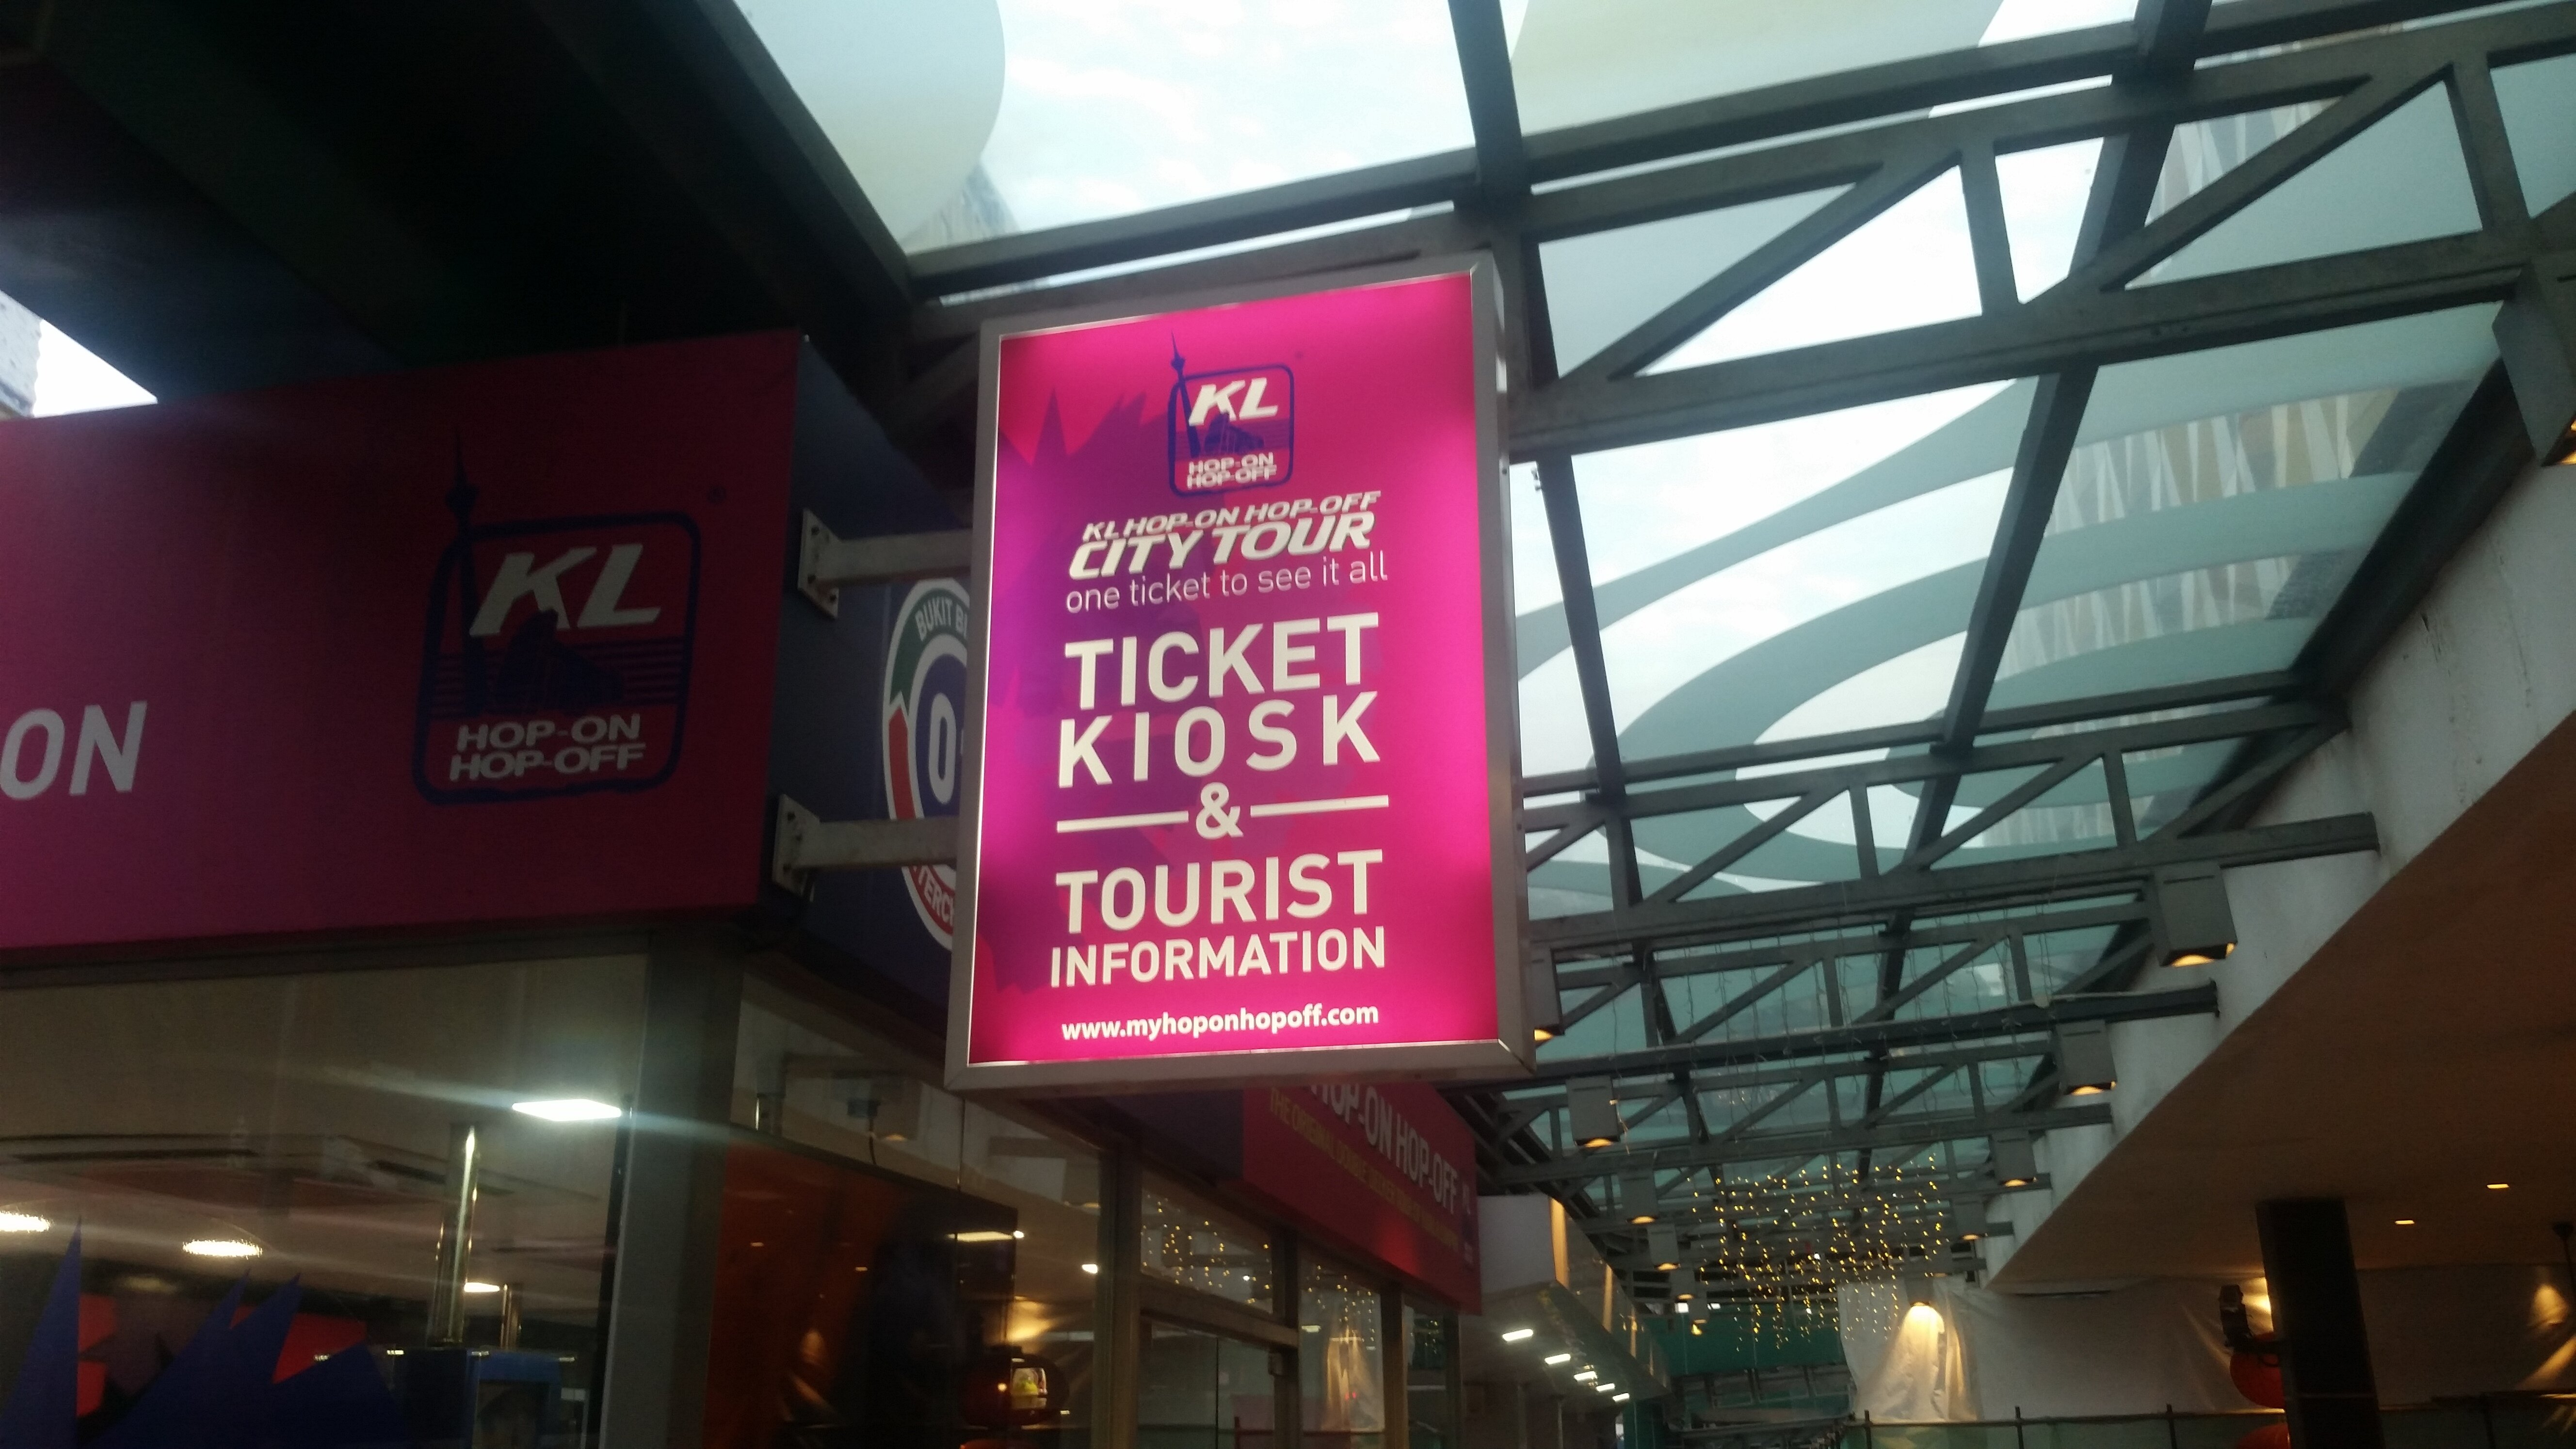 See everything there is to see in Kuala Lumpur with just one bus ticket!